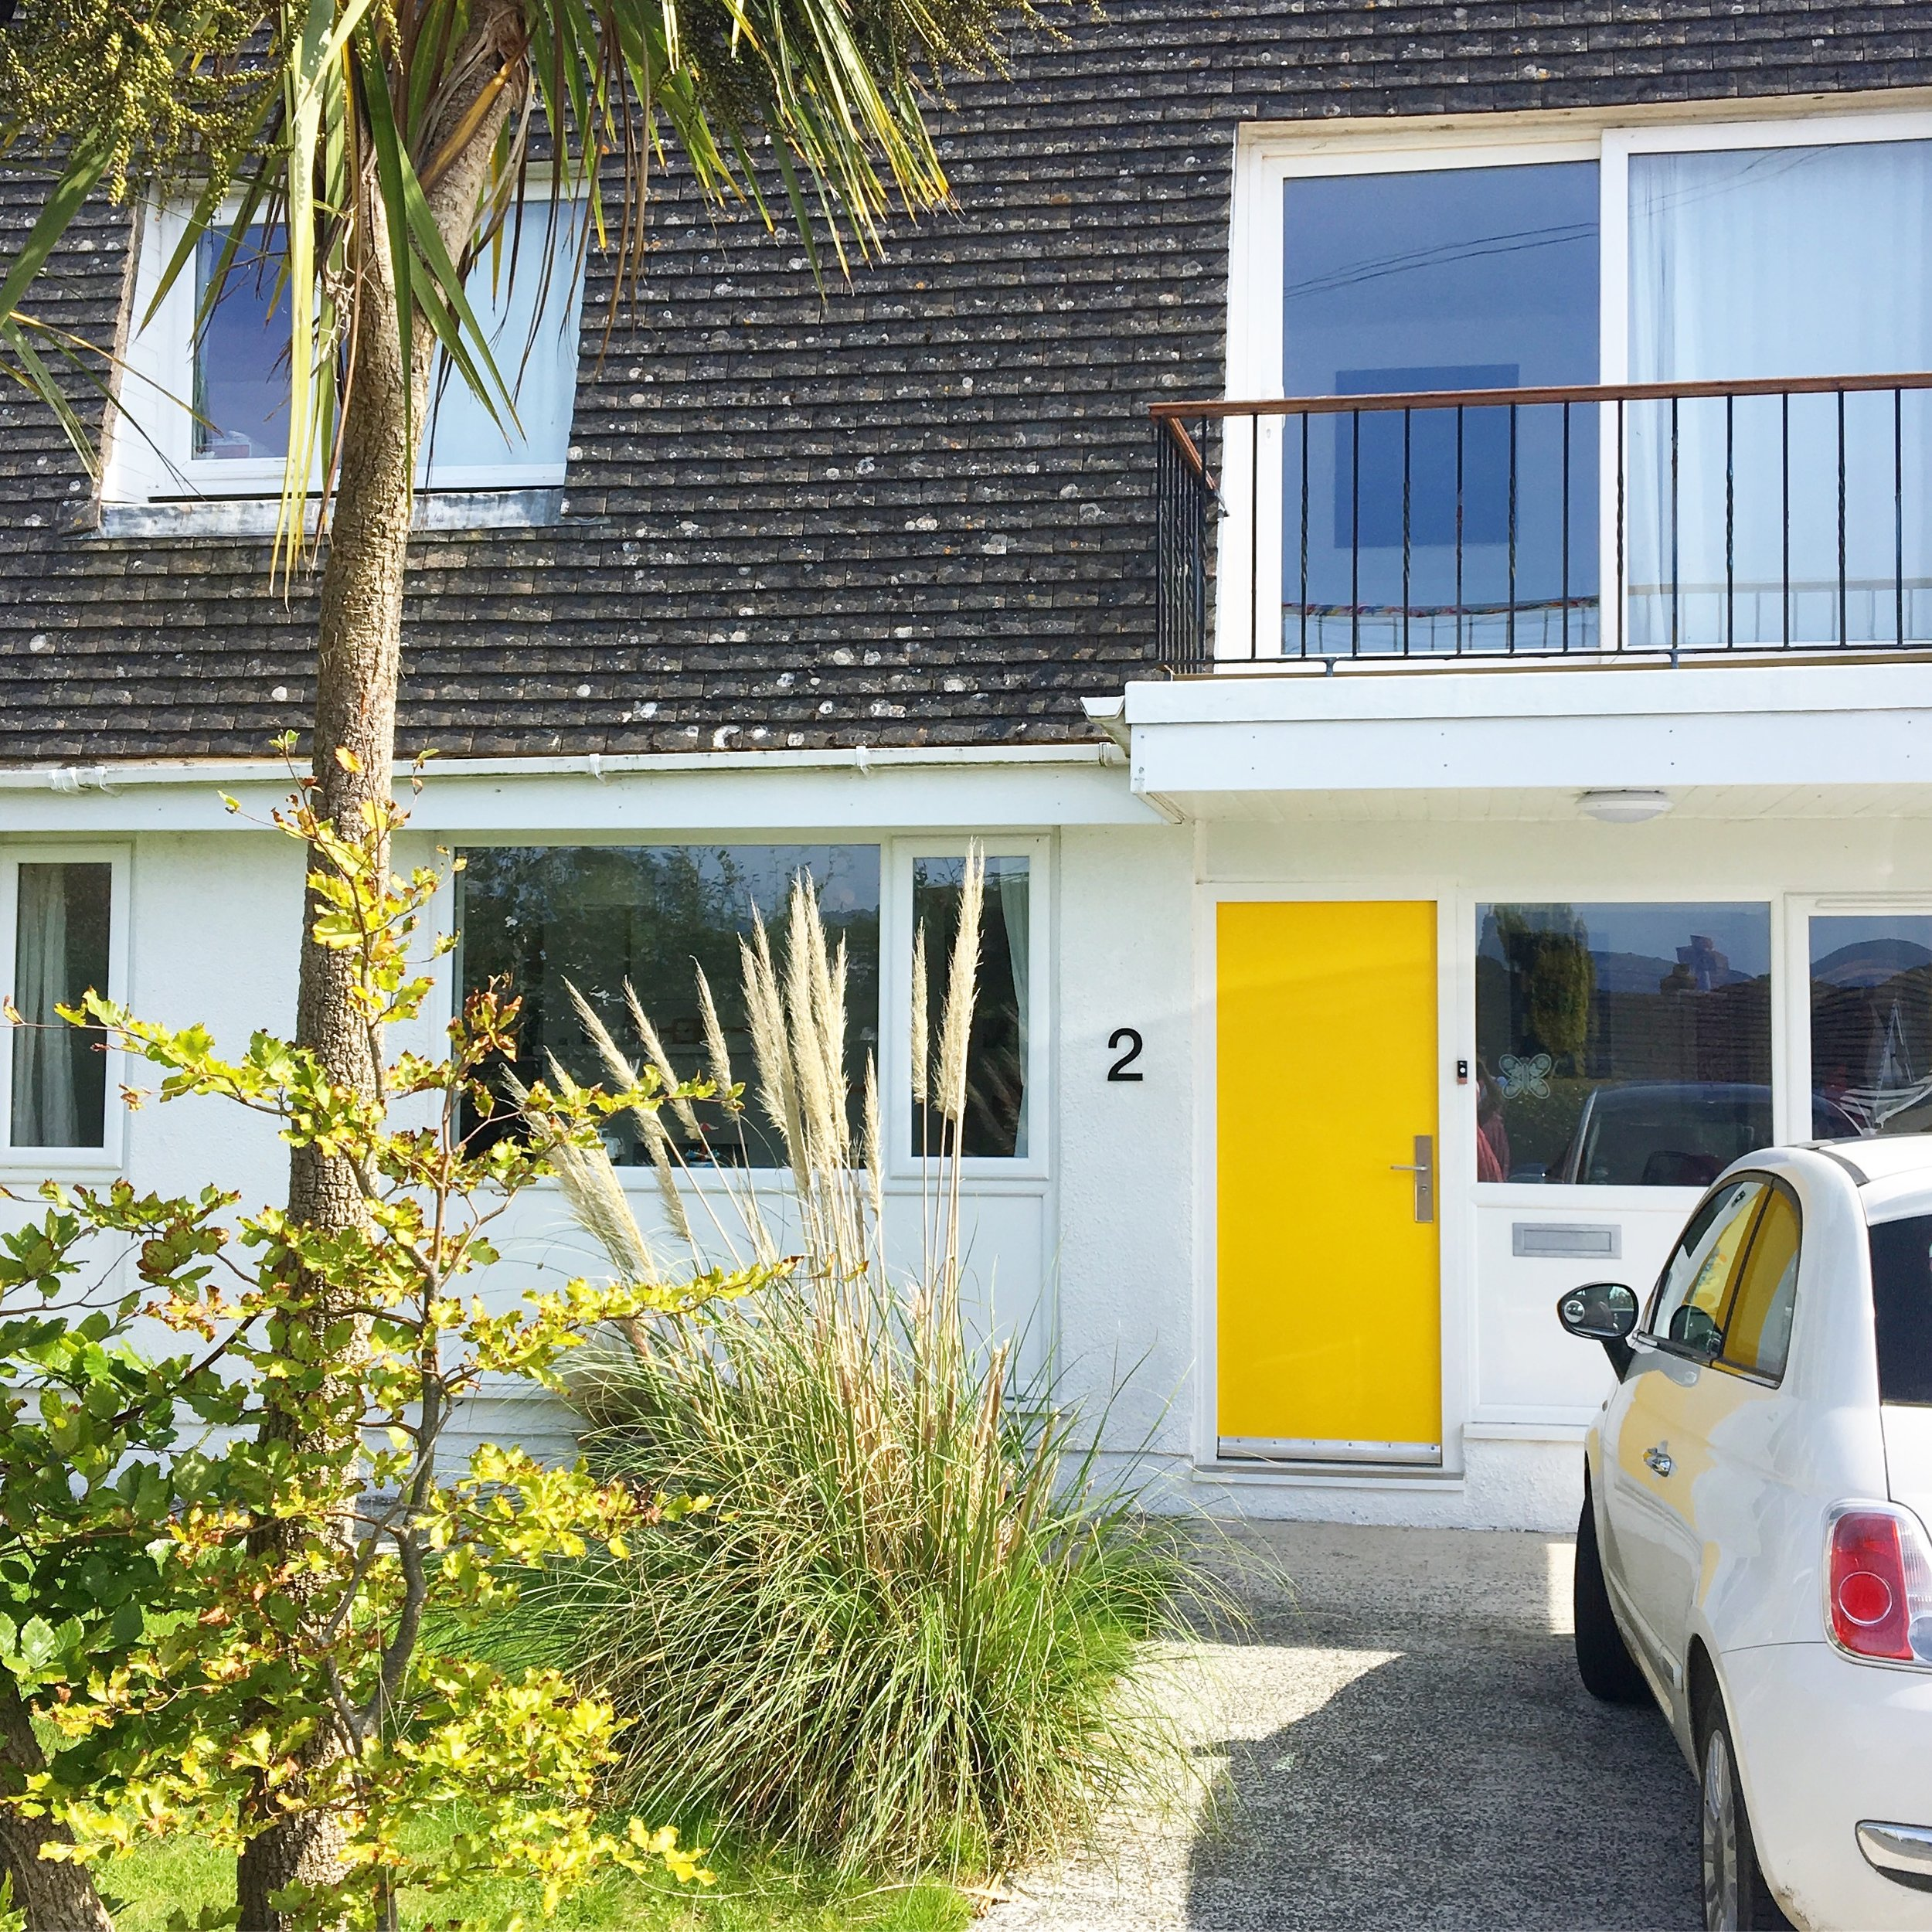 Our 60s home with it's new yellow door